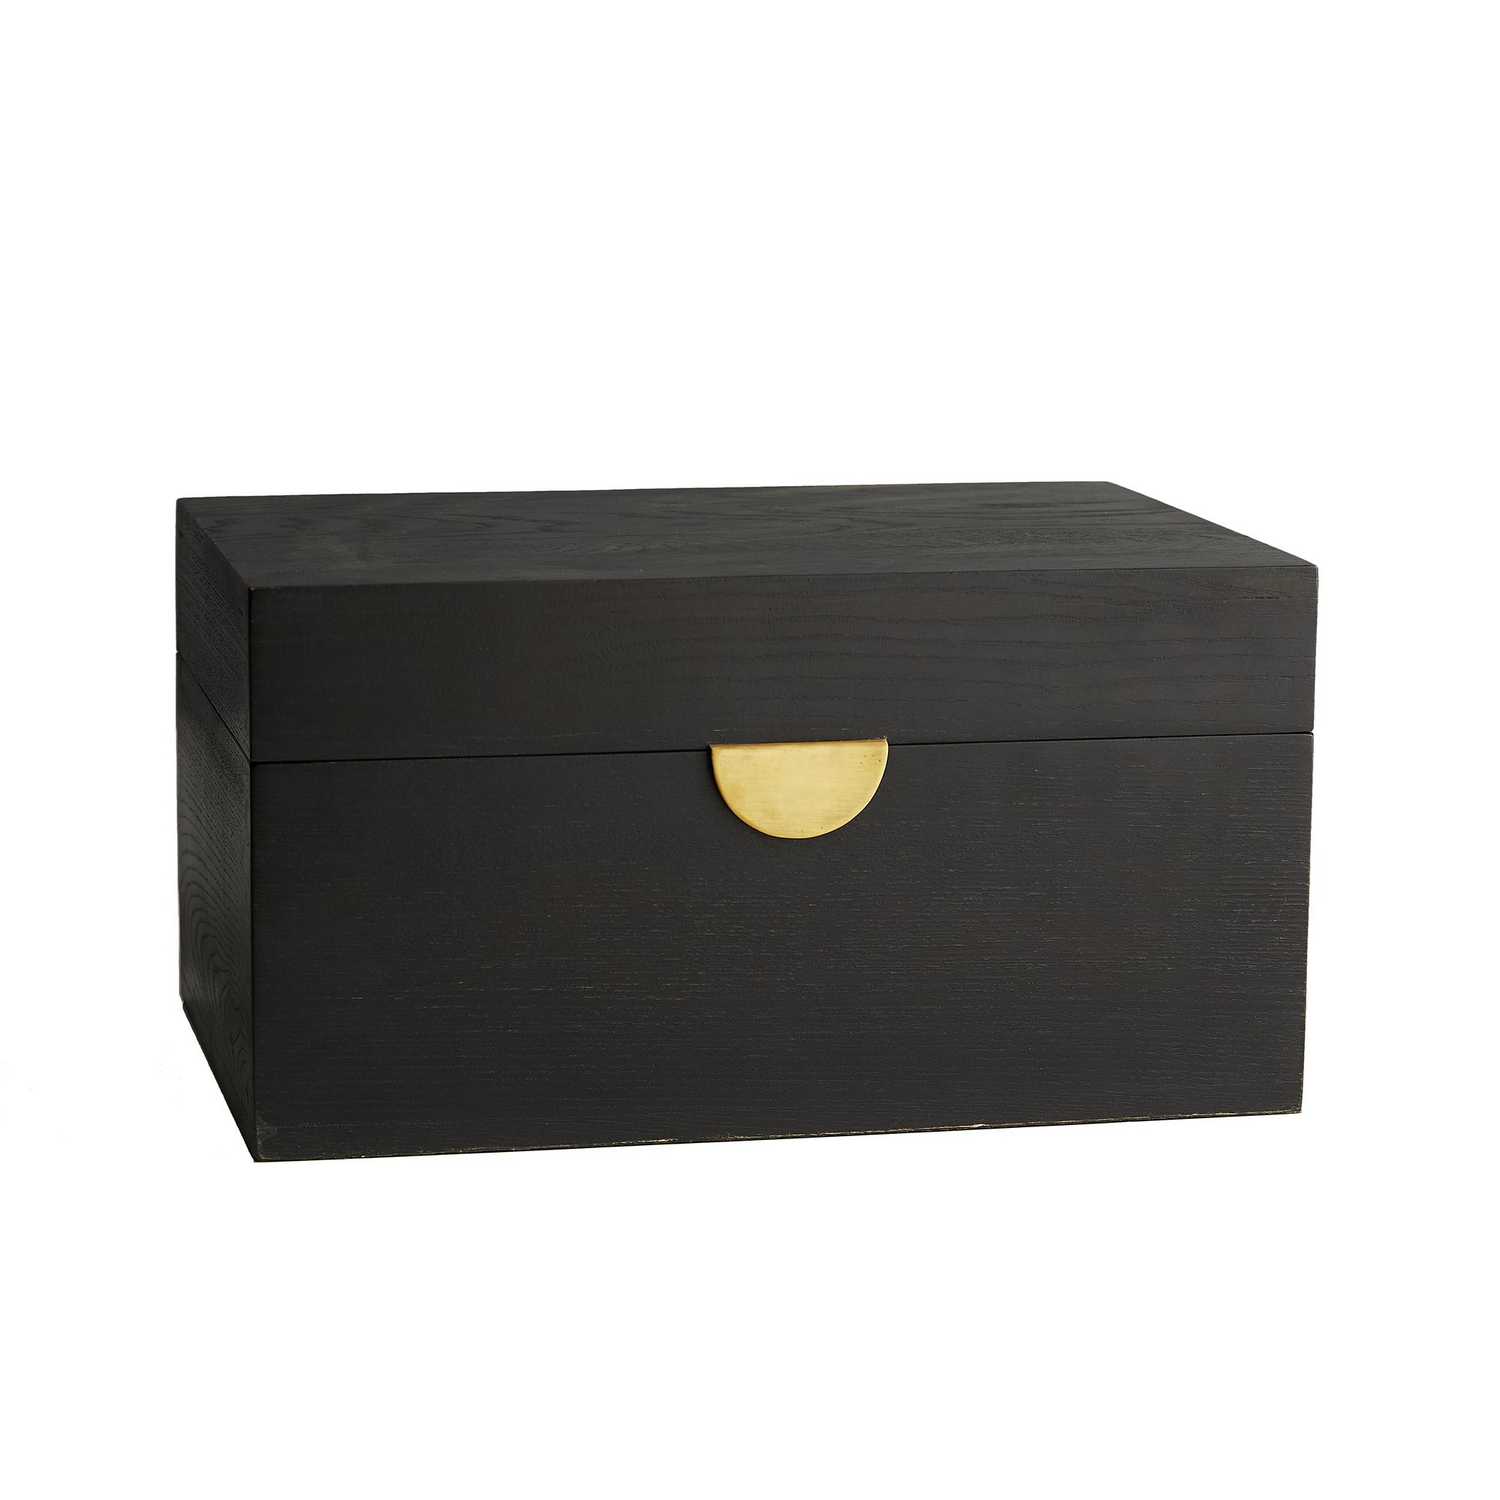 Box by Arteriors 6879